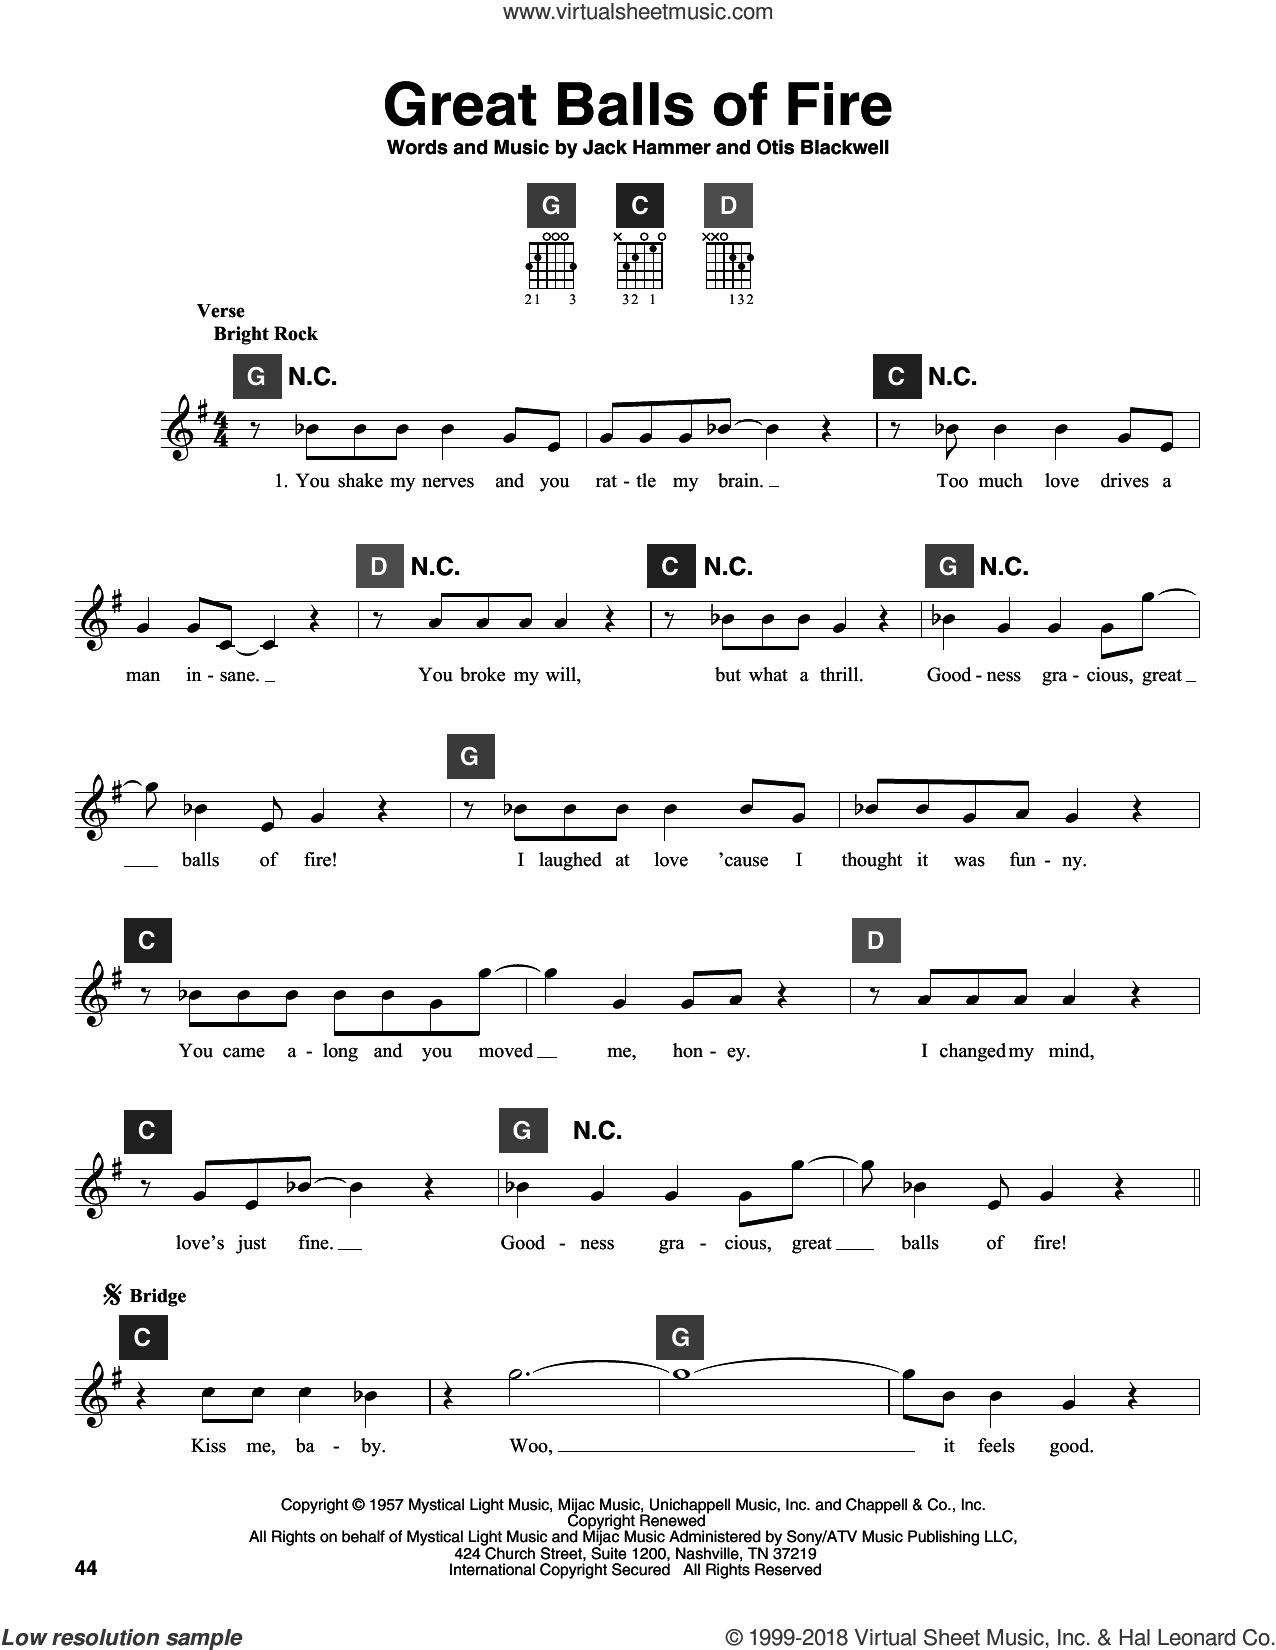 Great Balls Of Fire sheet music for guitar solo (ChordBuddy system) by Otis Blackwell, Jerry Lee Lewis and Jack Hammer. Score Image Preview.